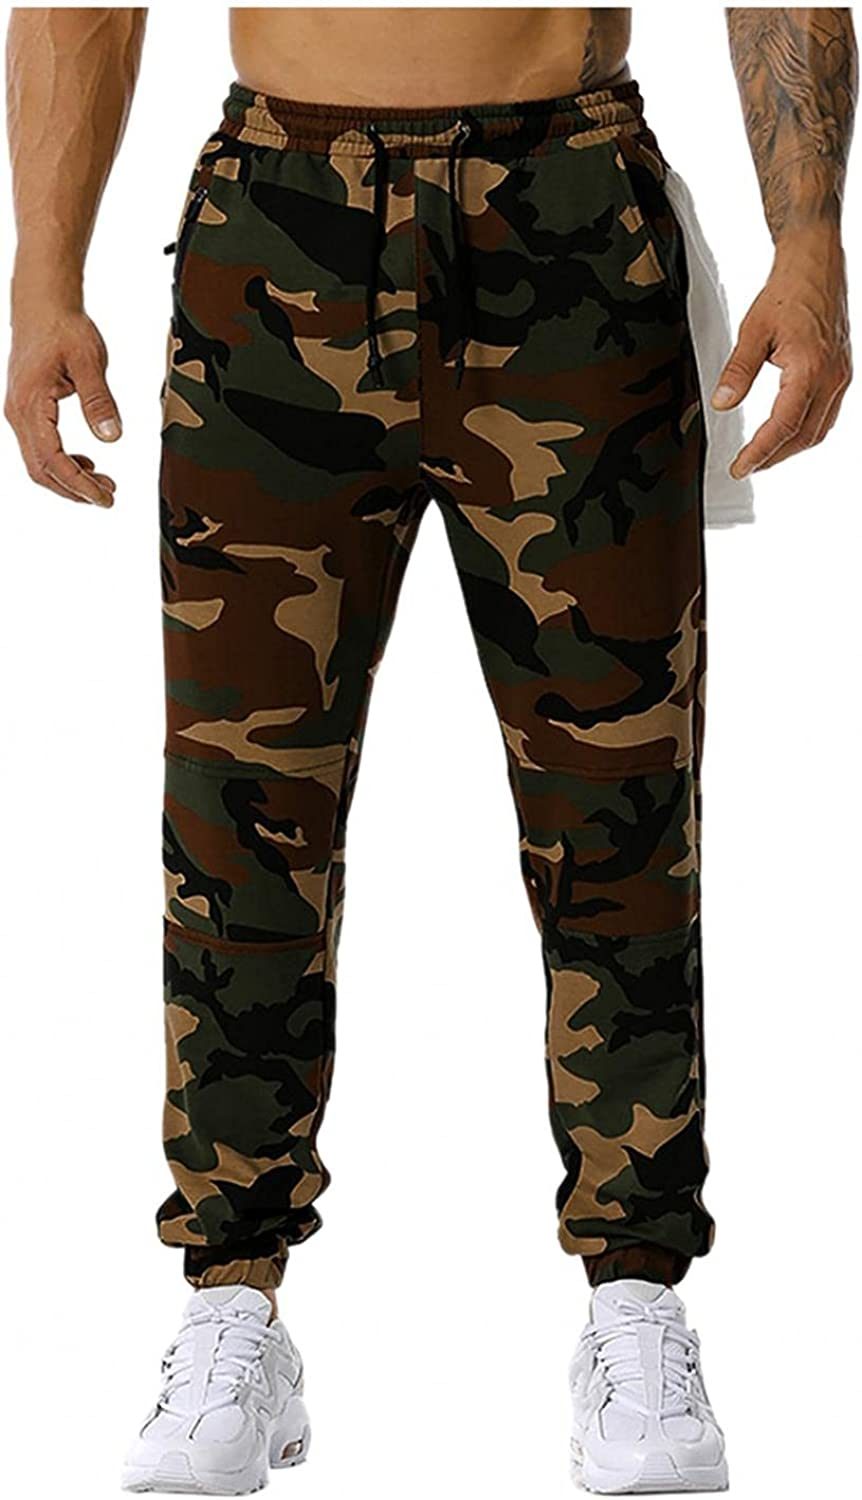 Beshion Men's Workout Athletic Sweatpants Elastic Waist Jogger Slim Running Pants Casual Camouflage Sports with Pockets